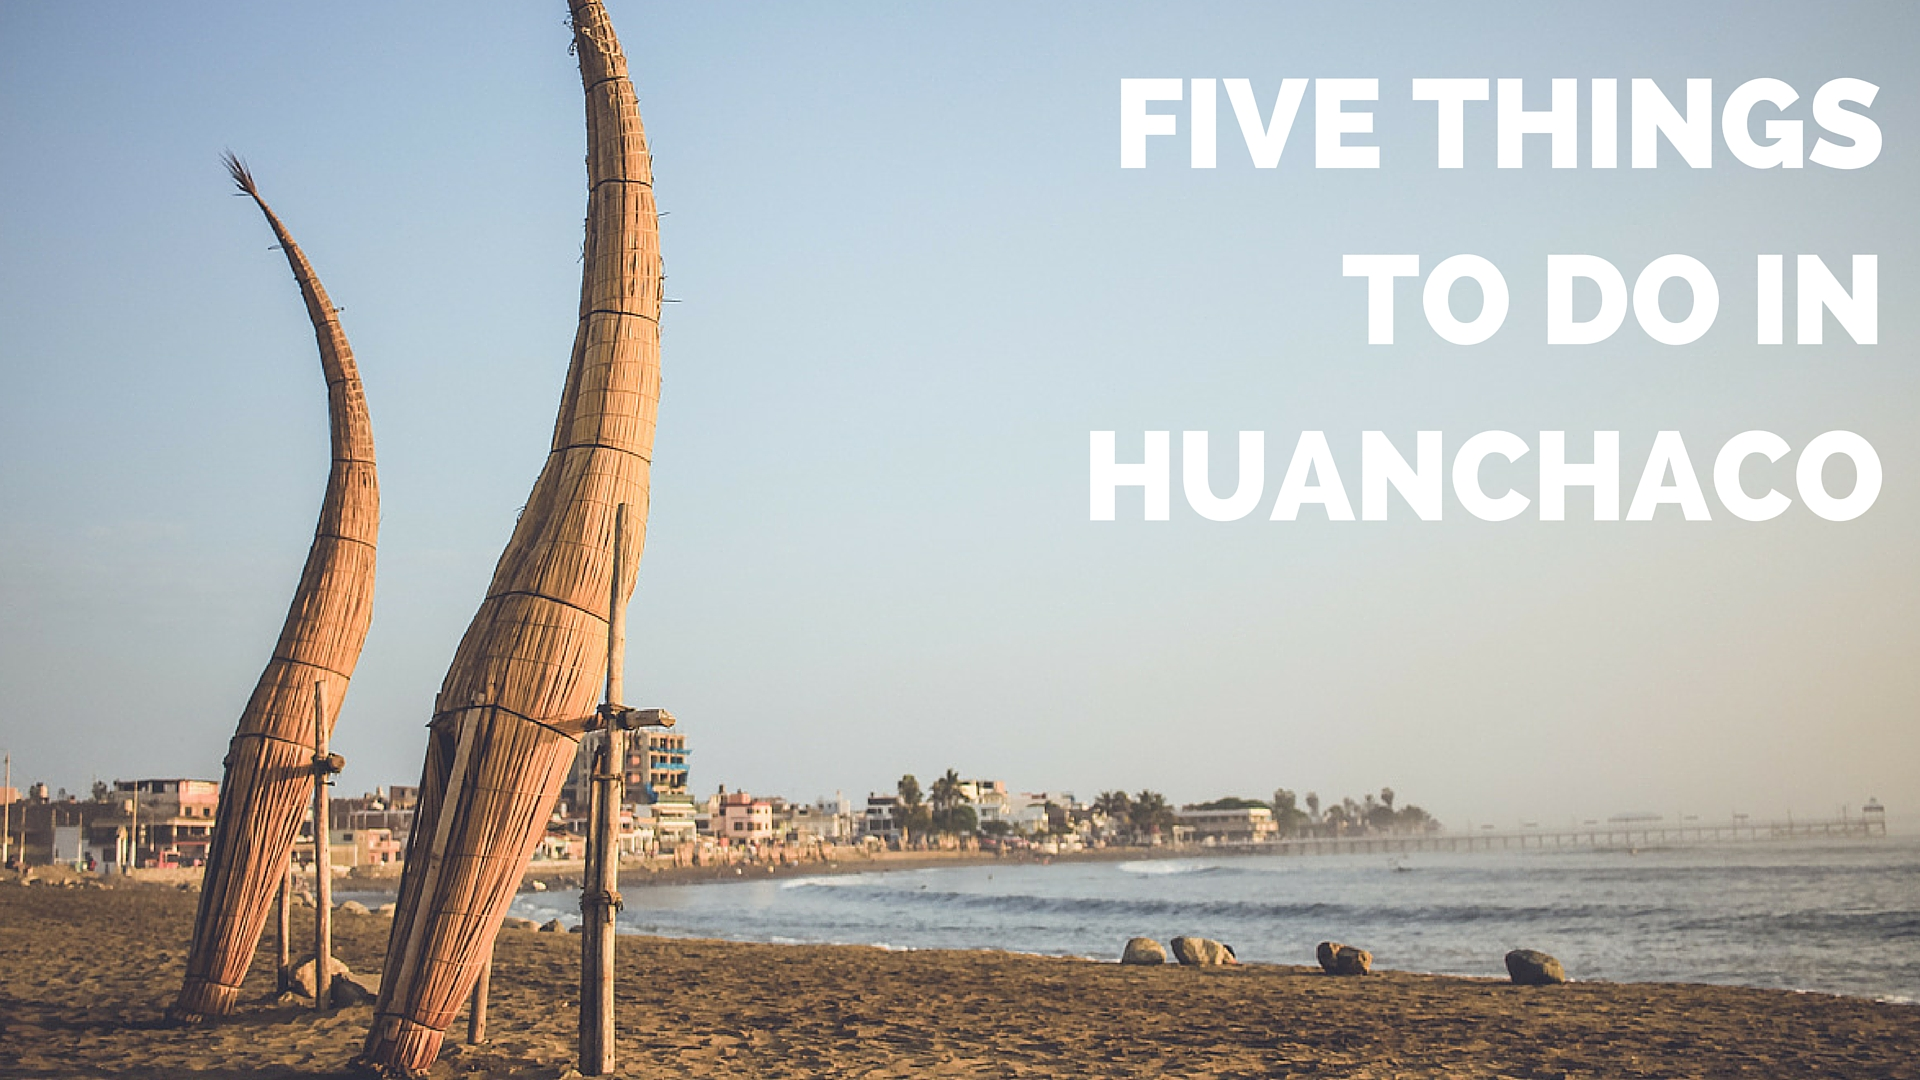 Five things to do in Huanchaco